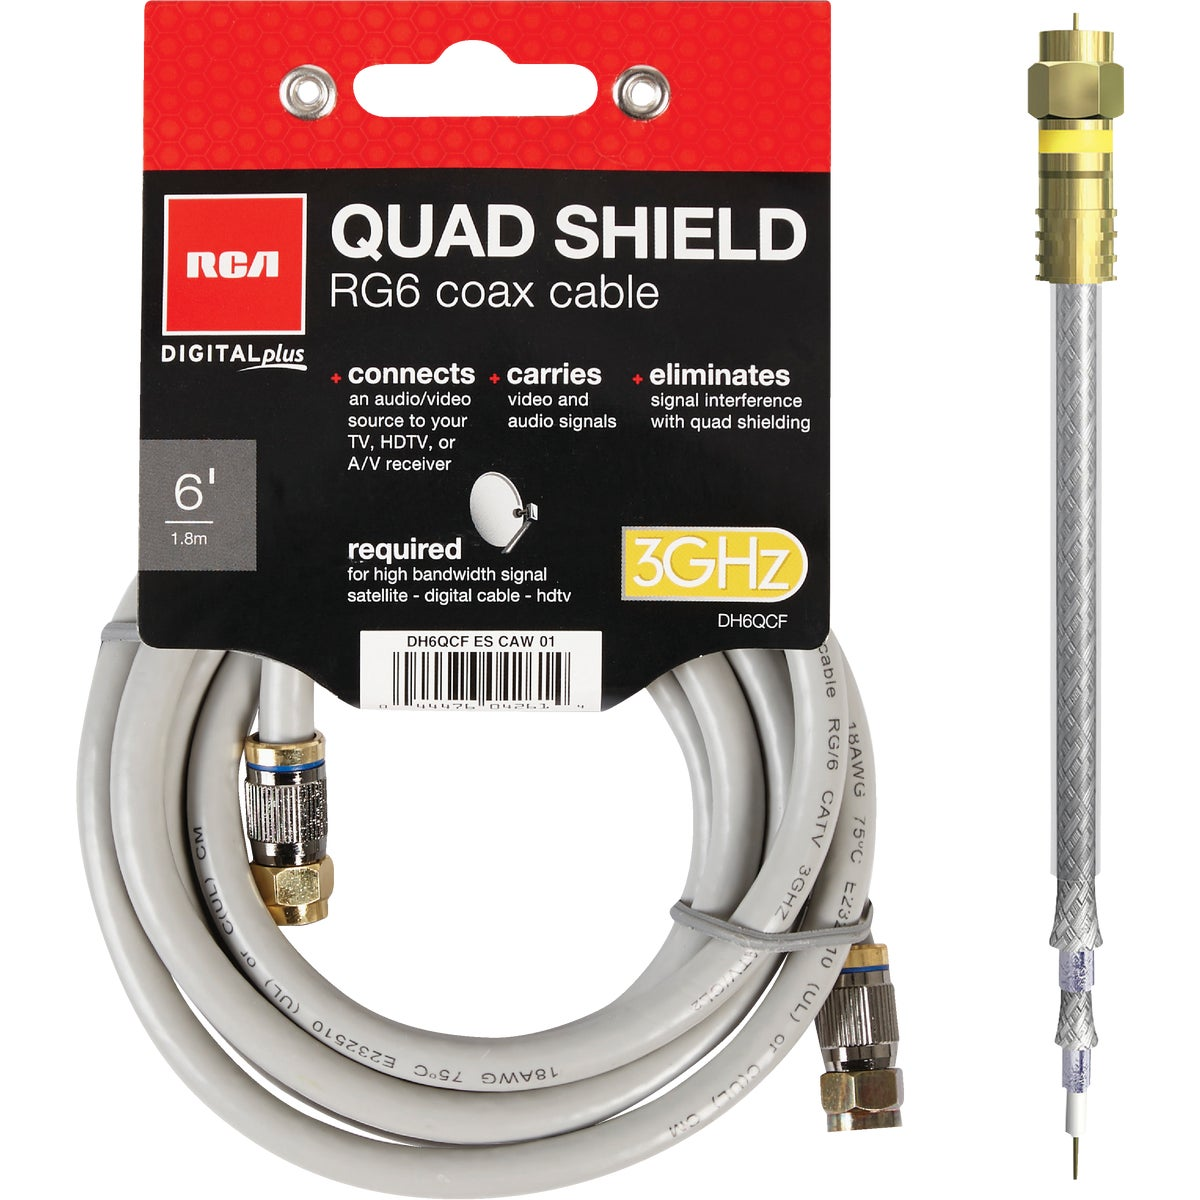 6' QUAD SHIELD CABLE